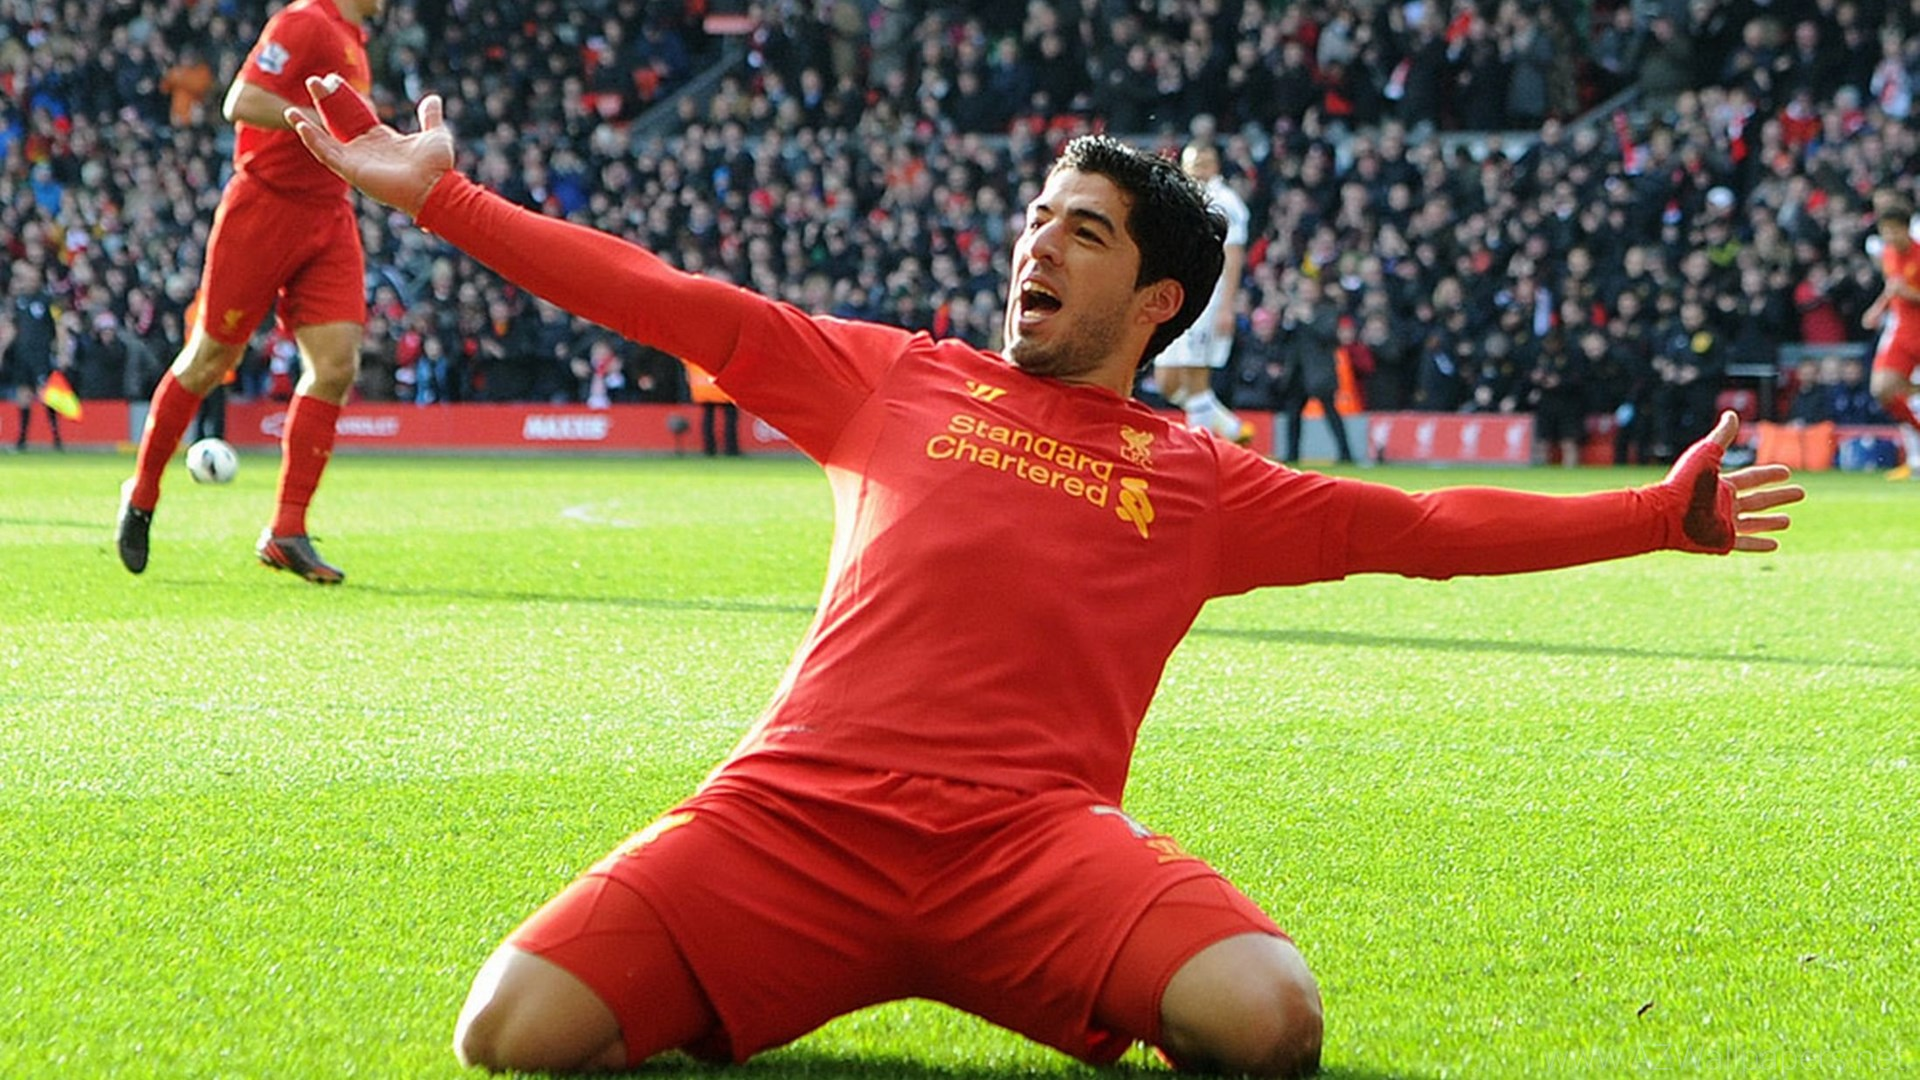 luis suarez football player hd free football background mobile desktop download wallpaper photos